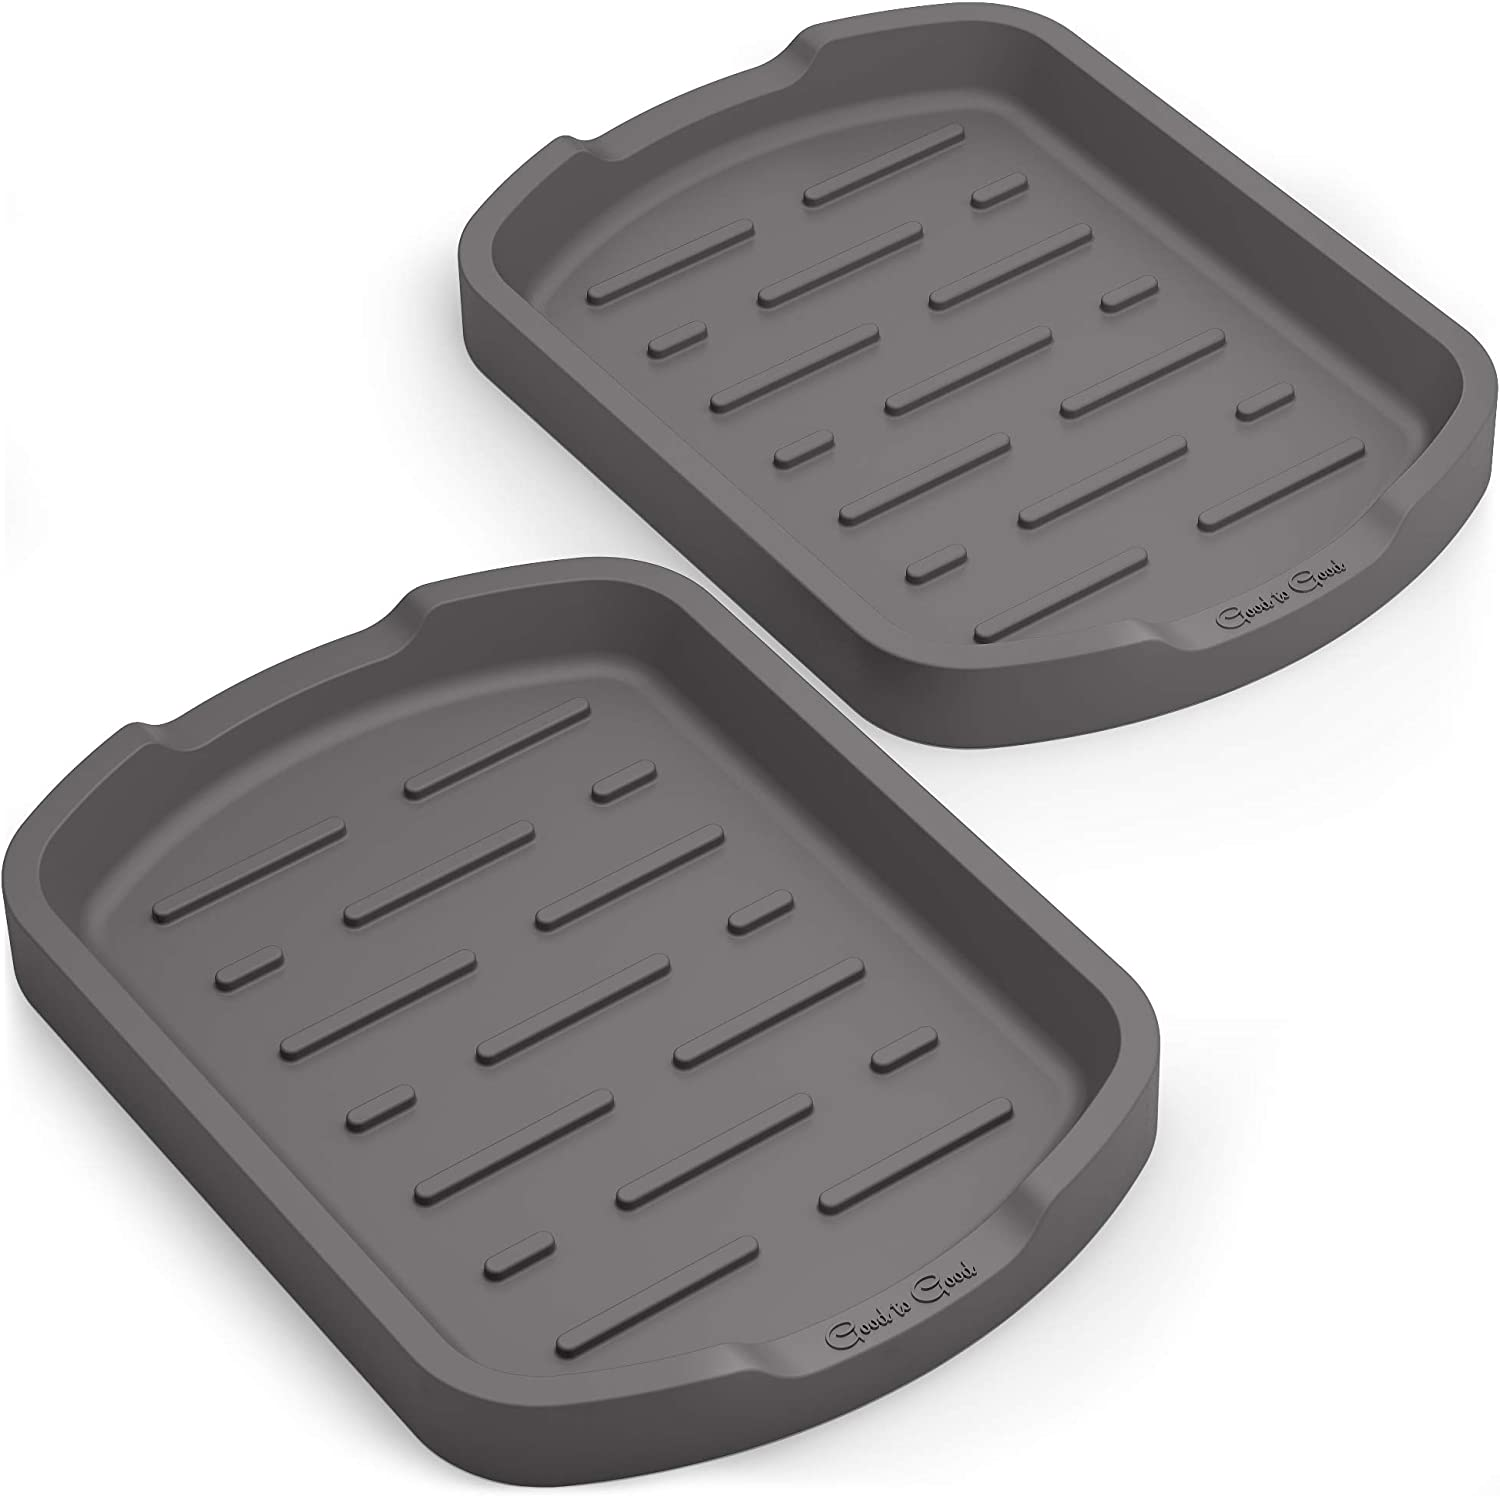 Good to Good Silicone Organizer Tray Set of 2 - Multipurpose use like spoon rests, kitchen sponge holder, bathroom soap dishes, cooking utensils rest - Grey